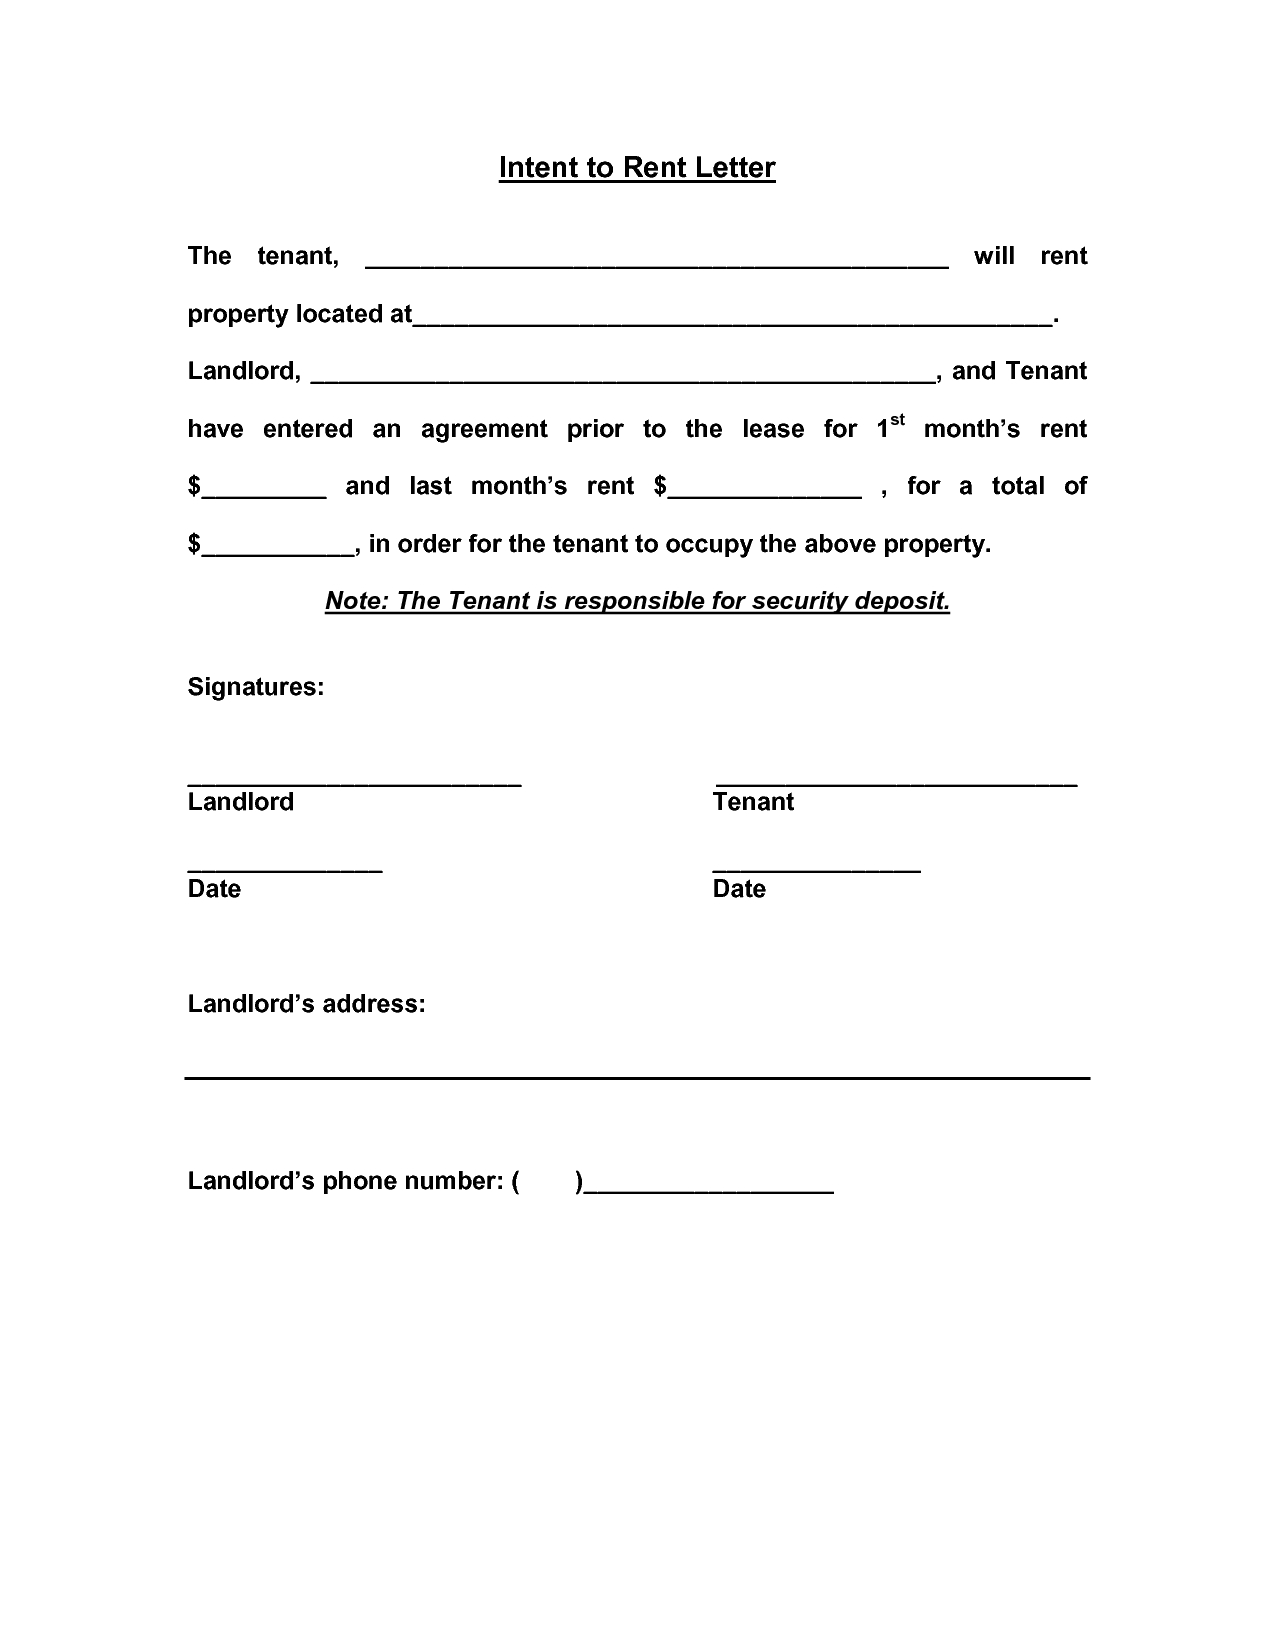 Letter Of Intent to Lease Commercial Property Template - Mercial Real Estate Lease Letter Intent Template Purchase